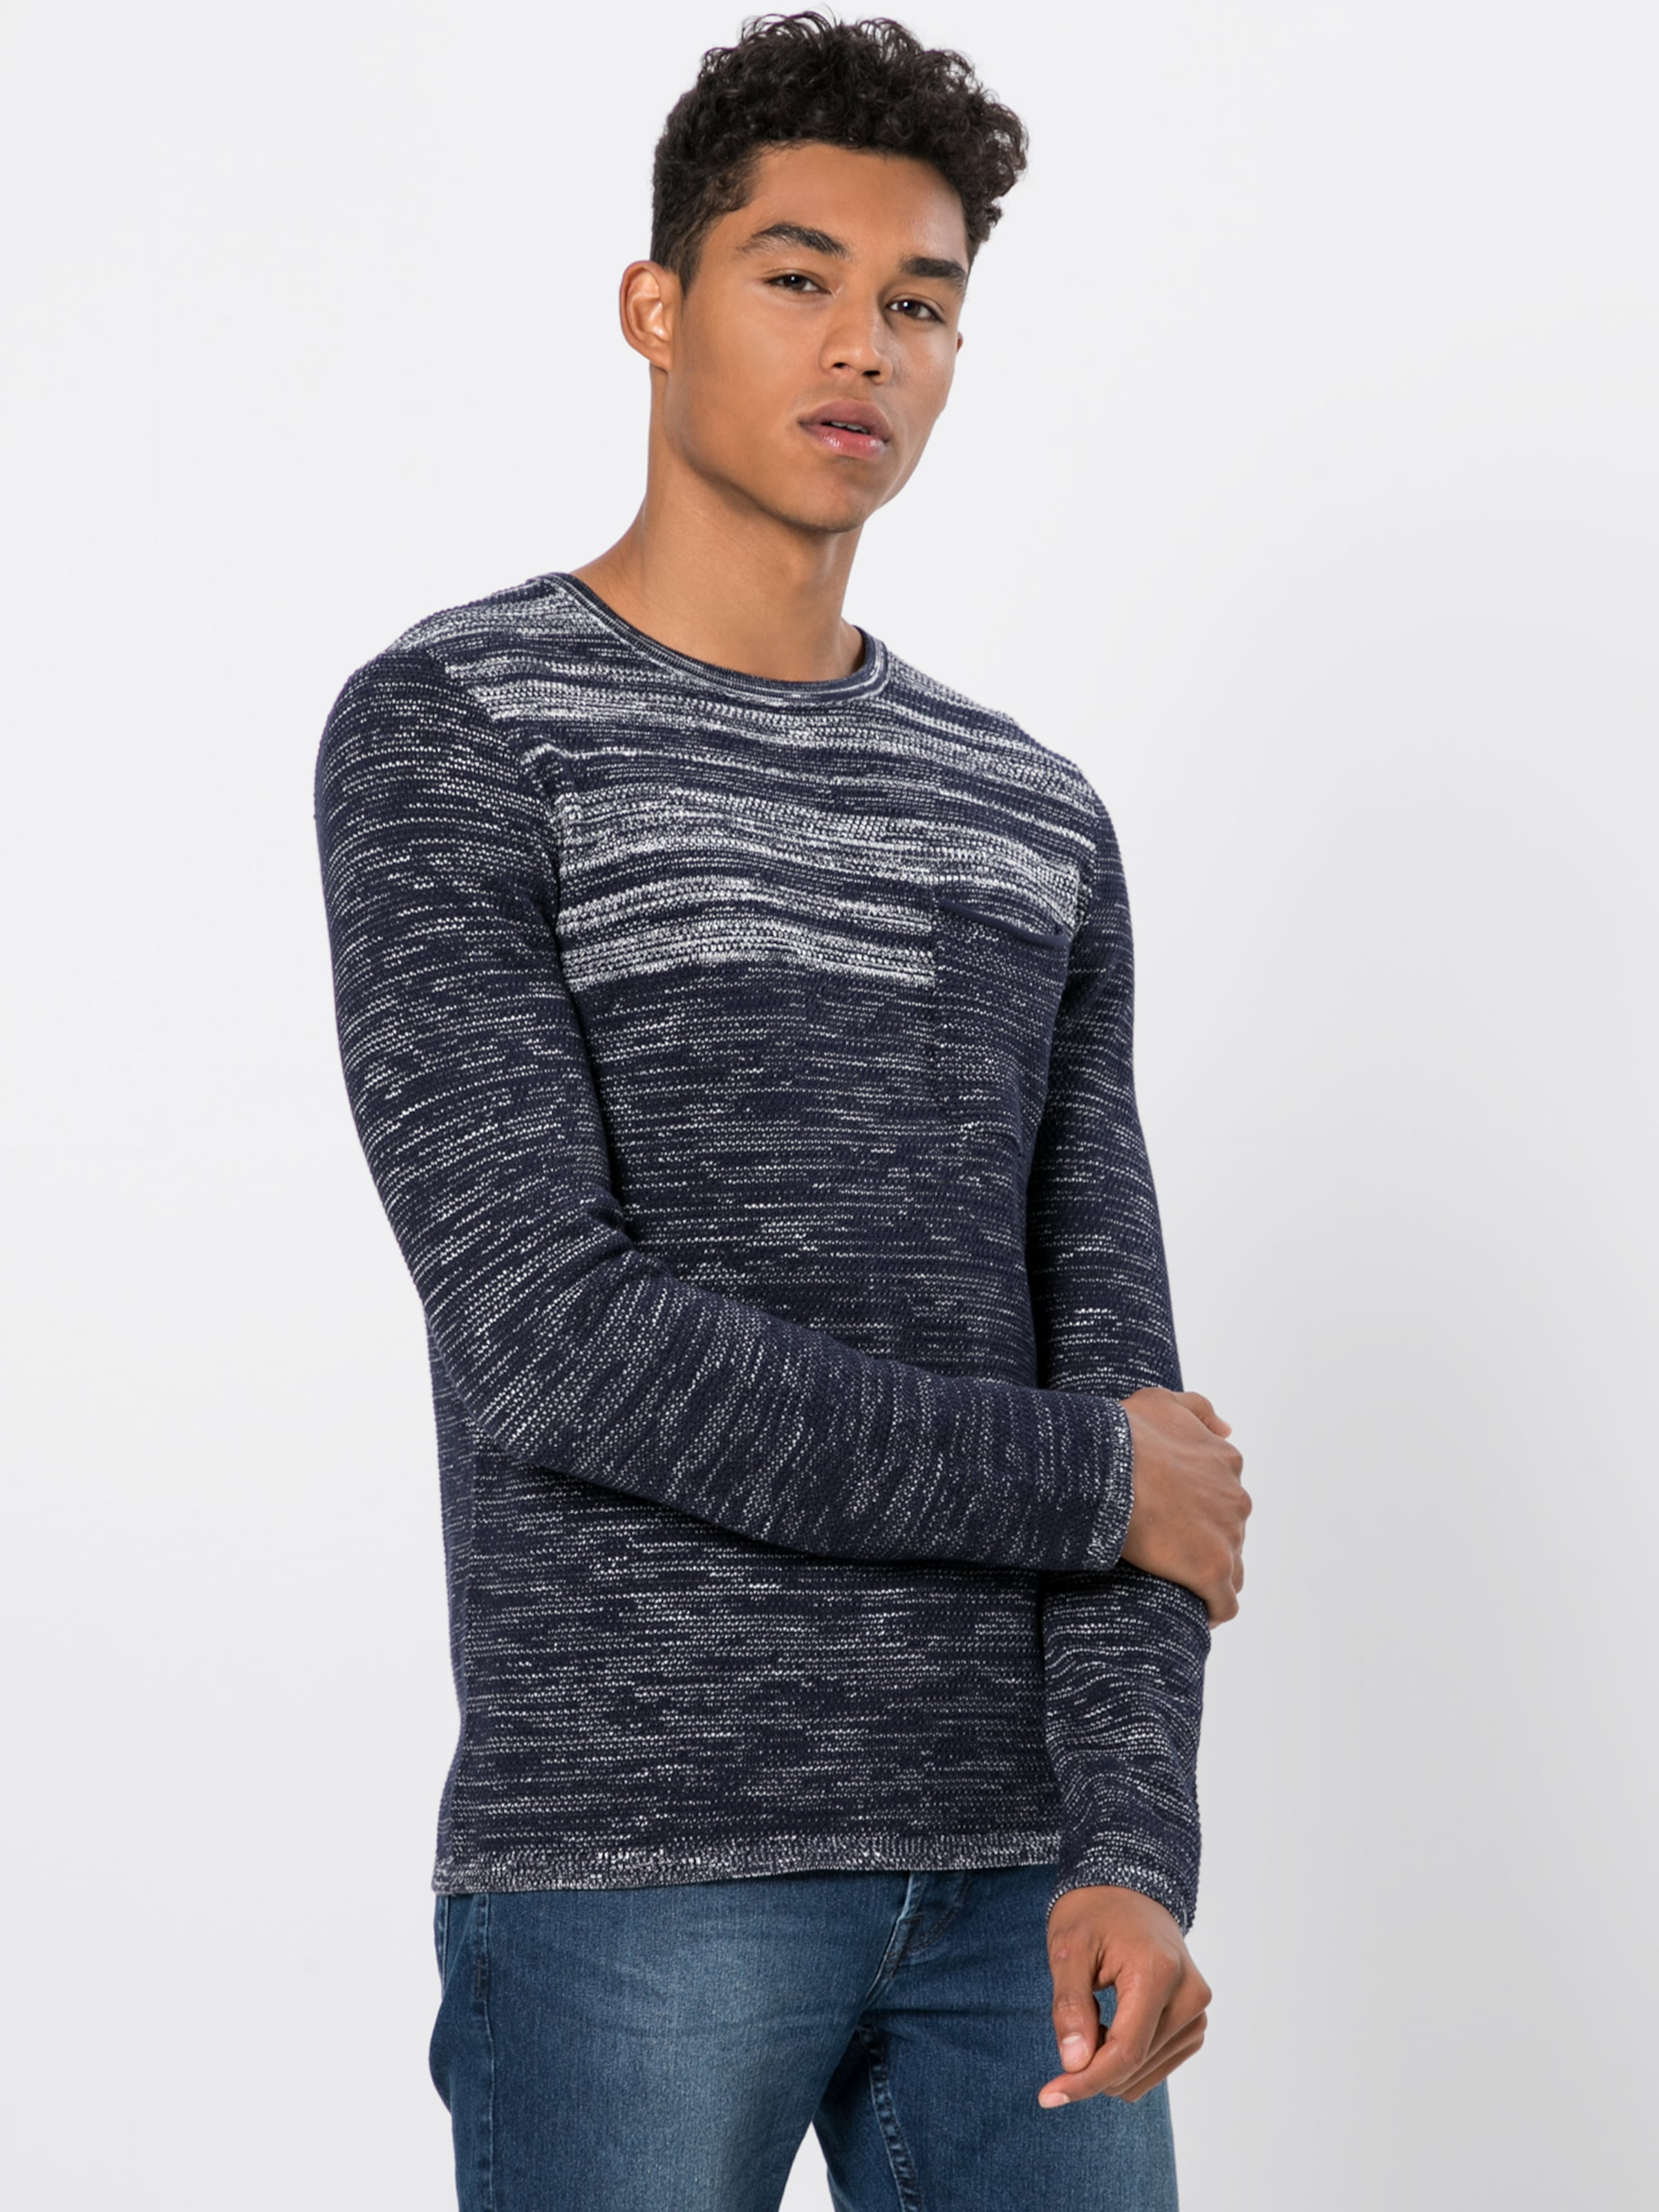 By s 'strickpullover' In Designed Q MarineOffwhite Pullover gvf7yYb6